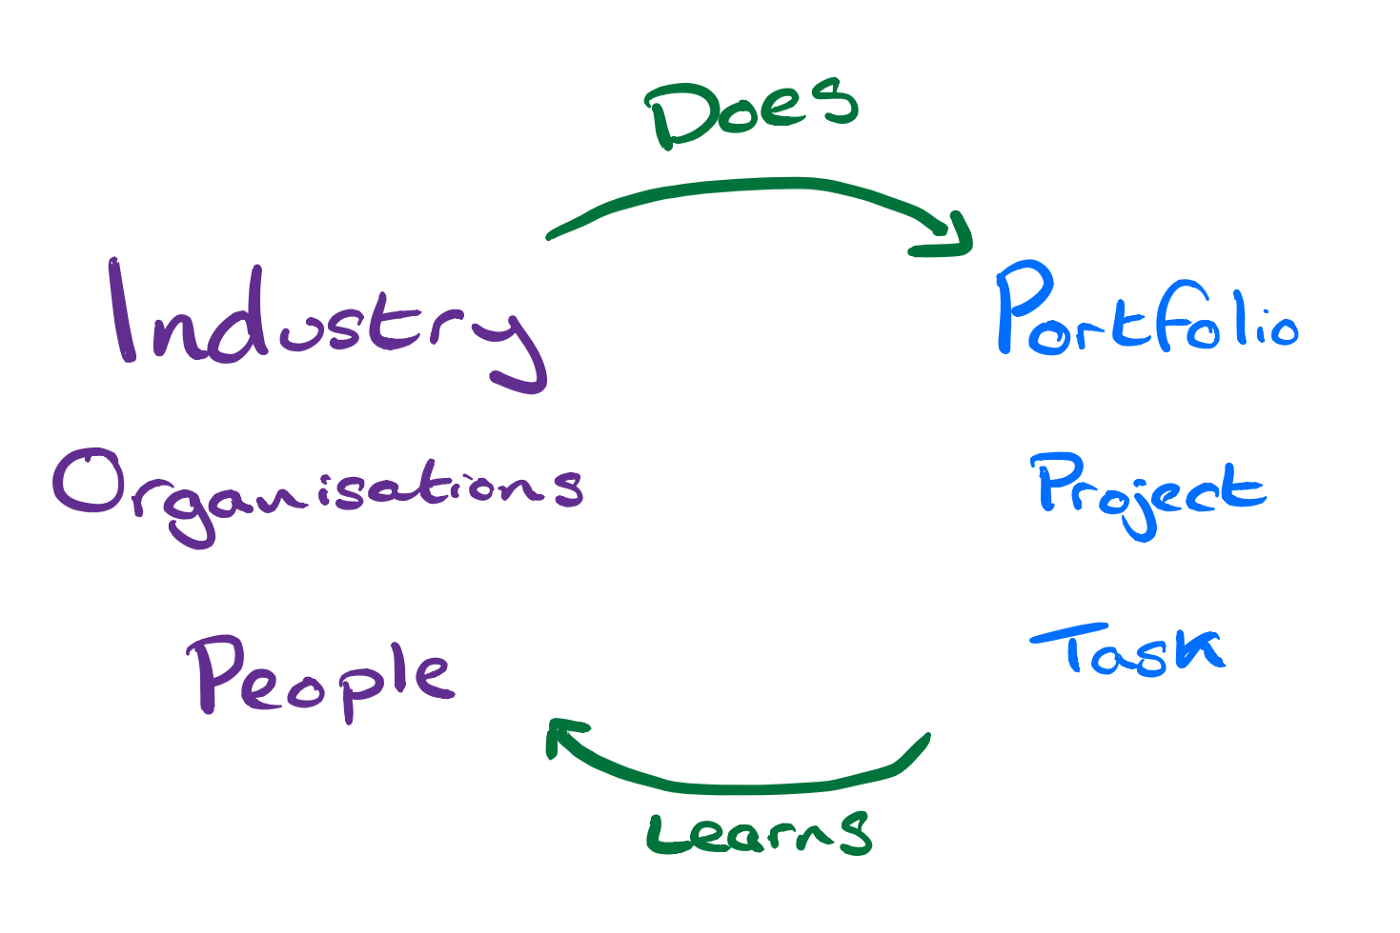 Figure showing the industry's organisational and activity decompositions working in a cycle of doing an learning.